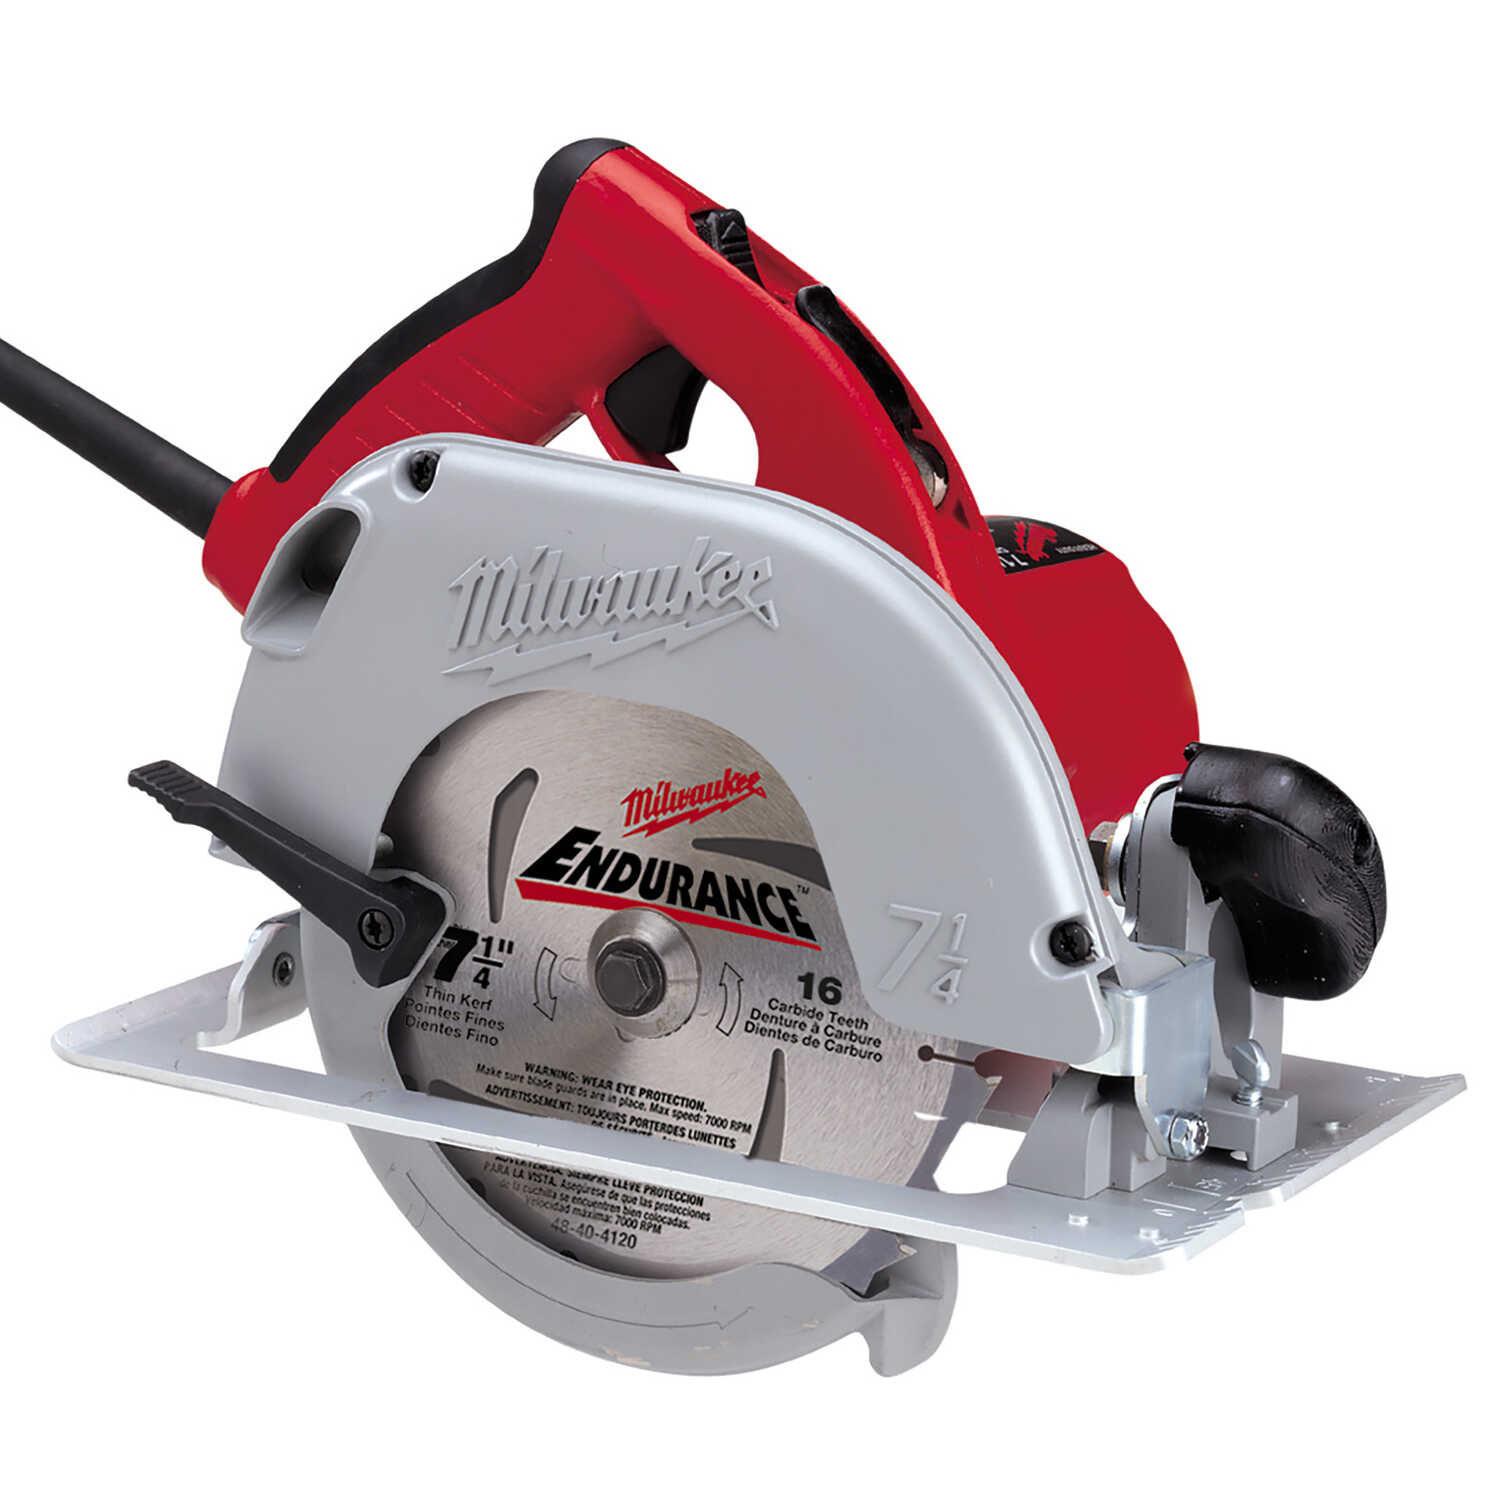 Milwaukee  TILT-LOK  7-1/4 in. 15 amps Corded  Circular Saw  5800 rpm